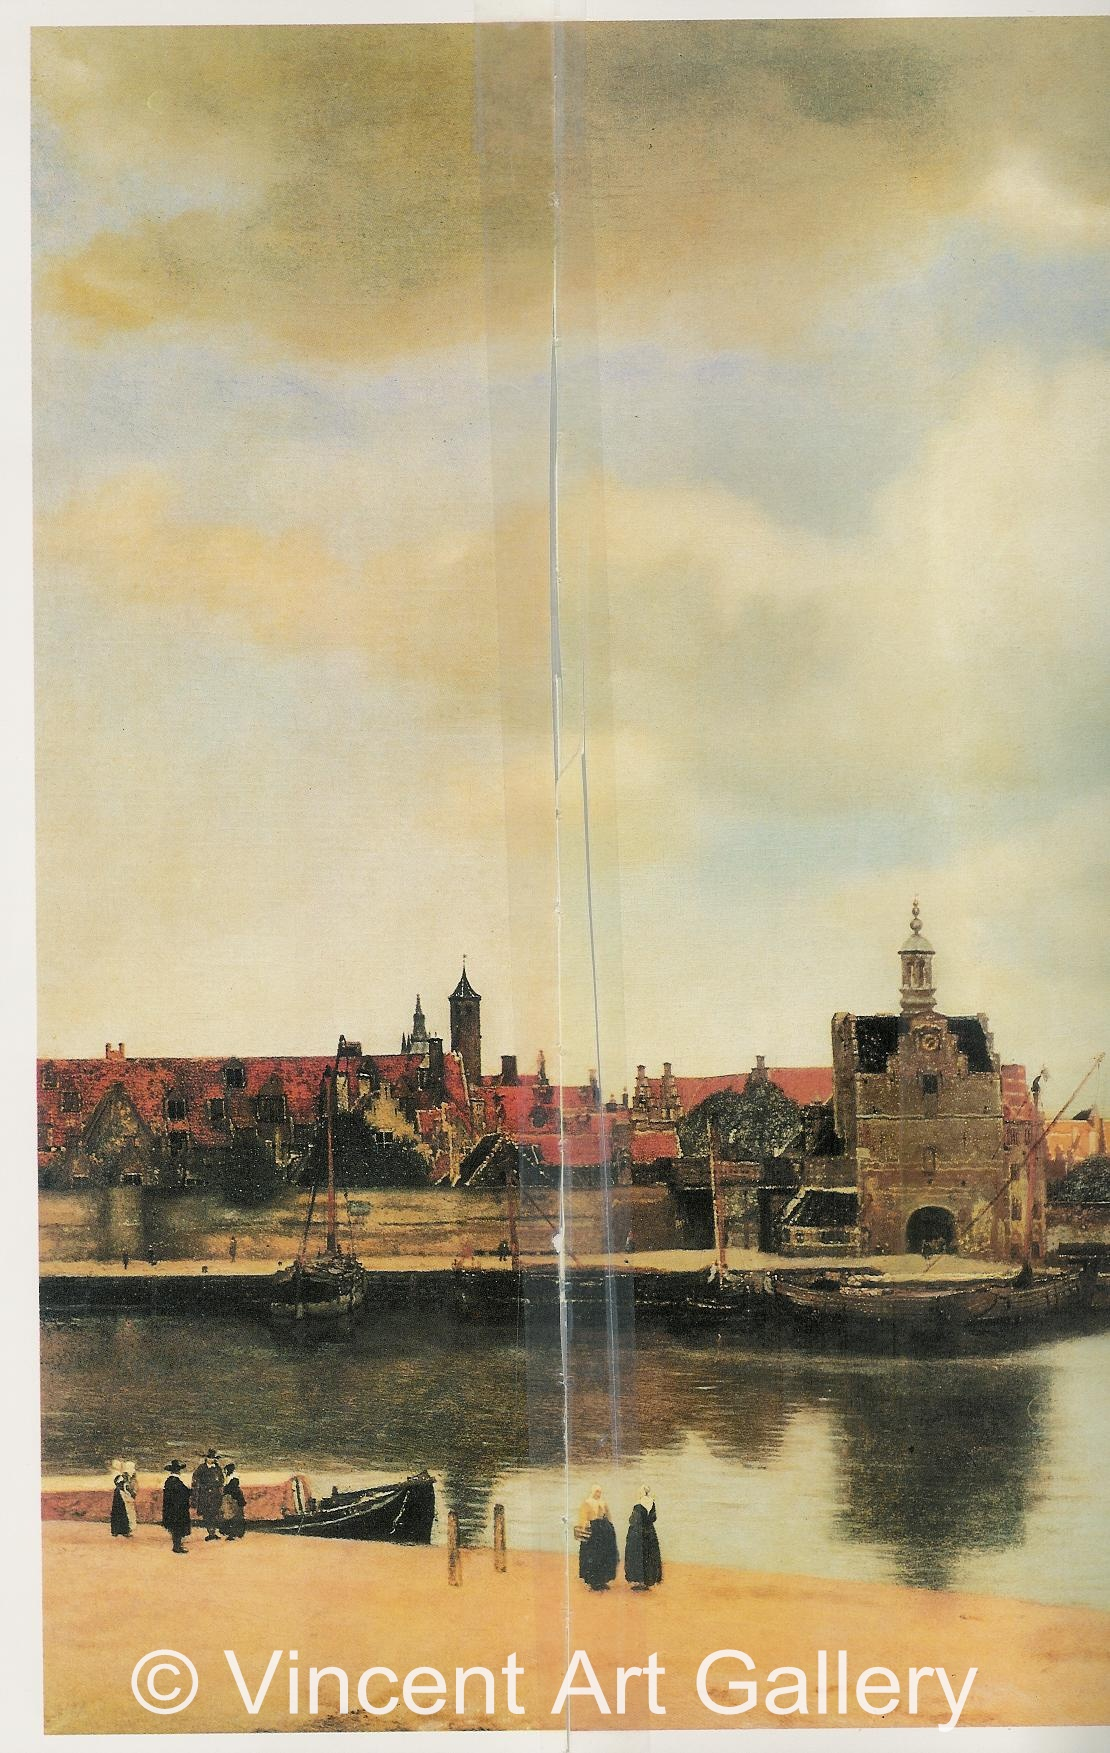 A635, VERMEER, View of Delft, DETAIL 2